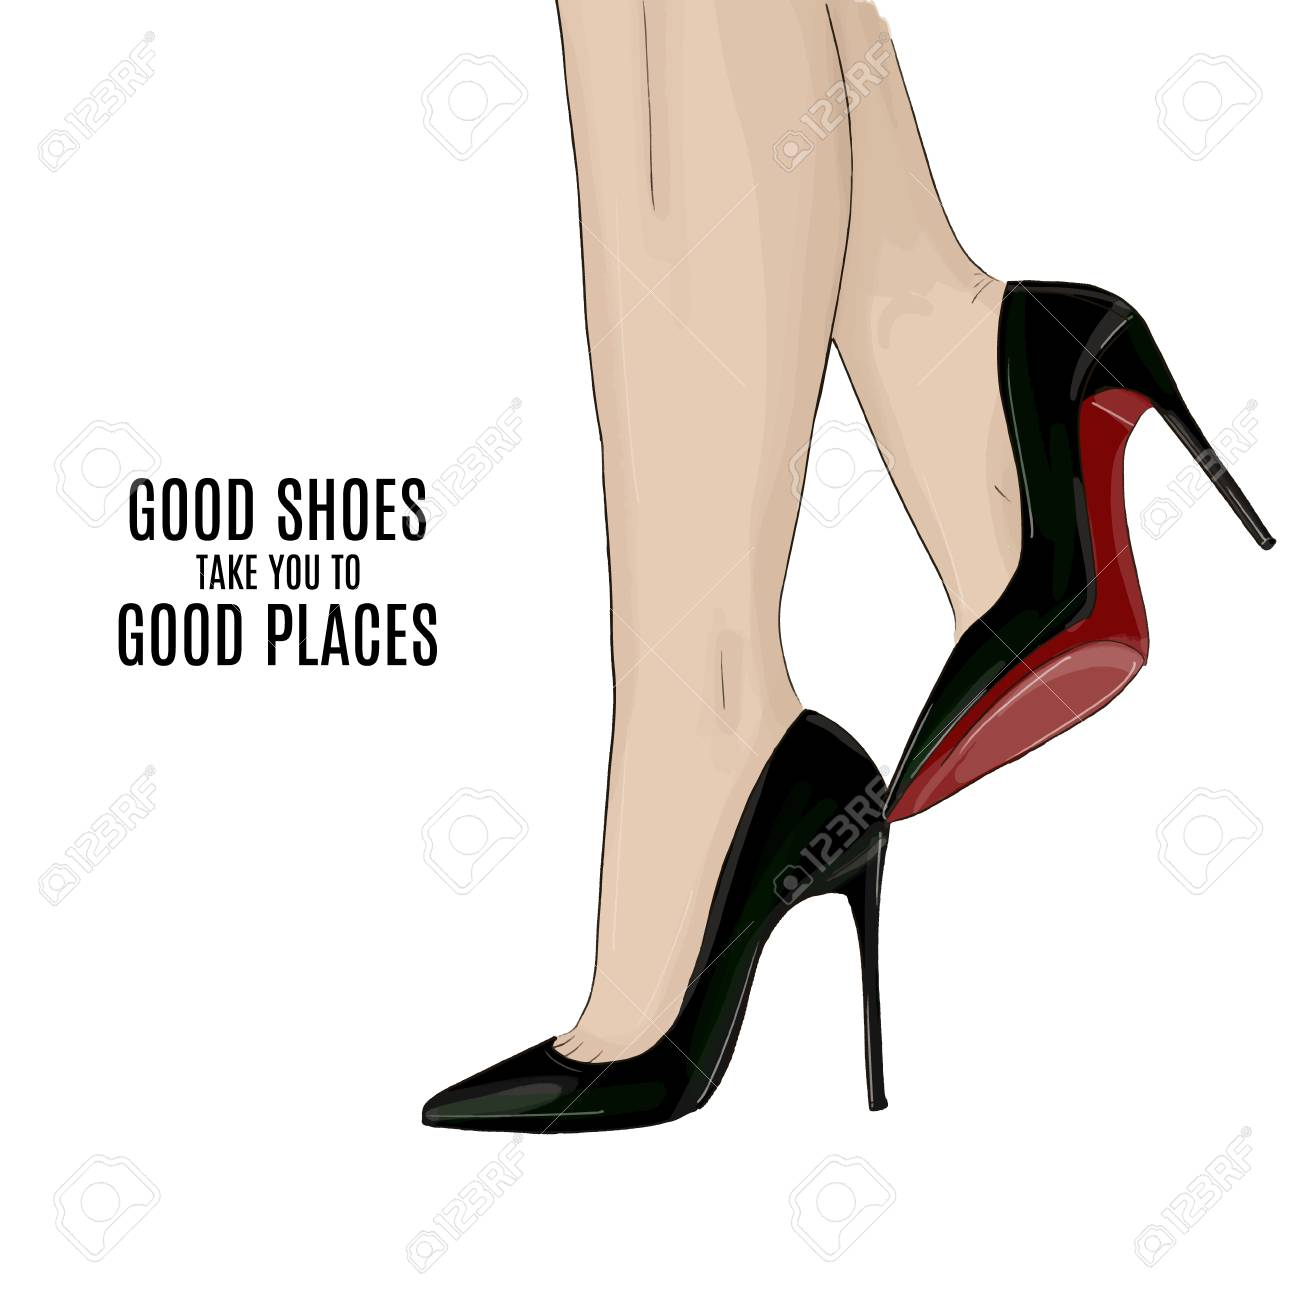 Woman beautiful legs on stileto high heels shoes fashion illustration